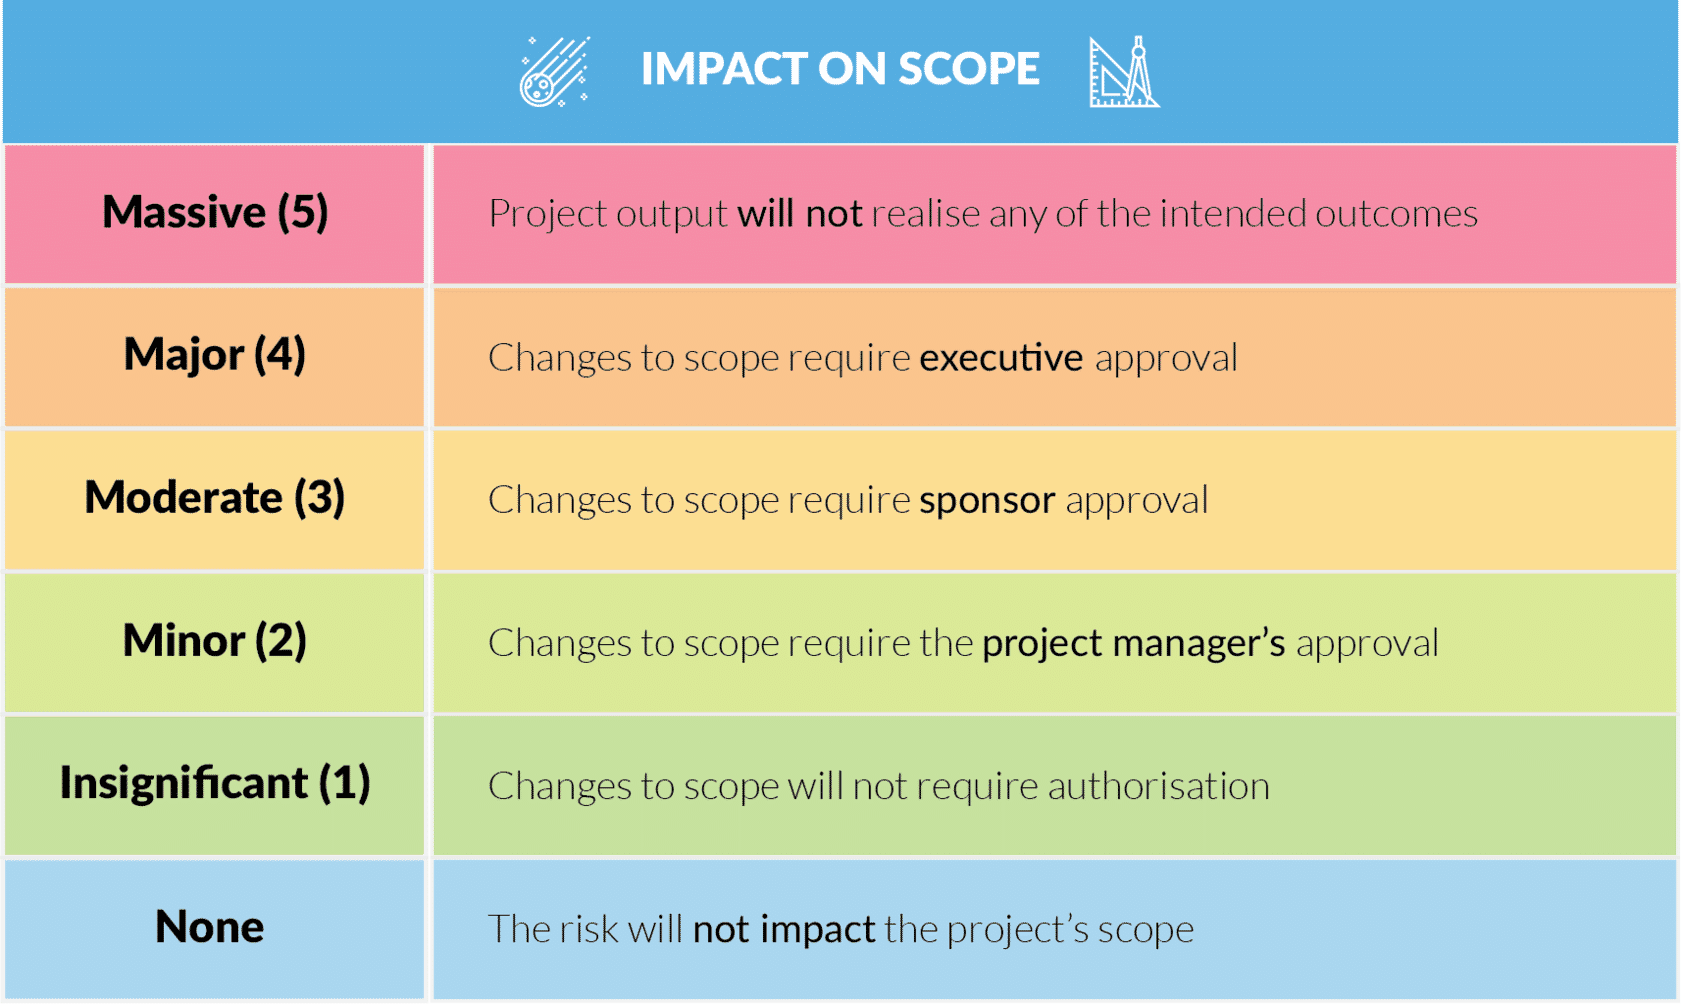 A table shows the impact on scope